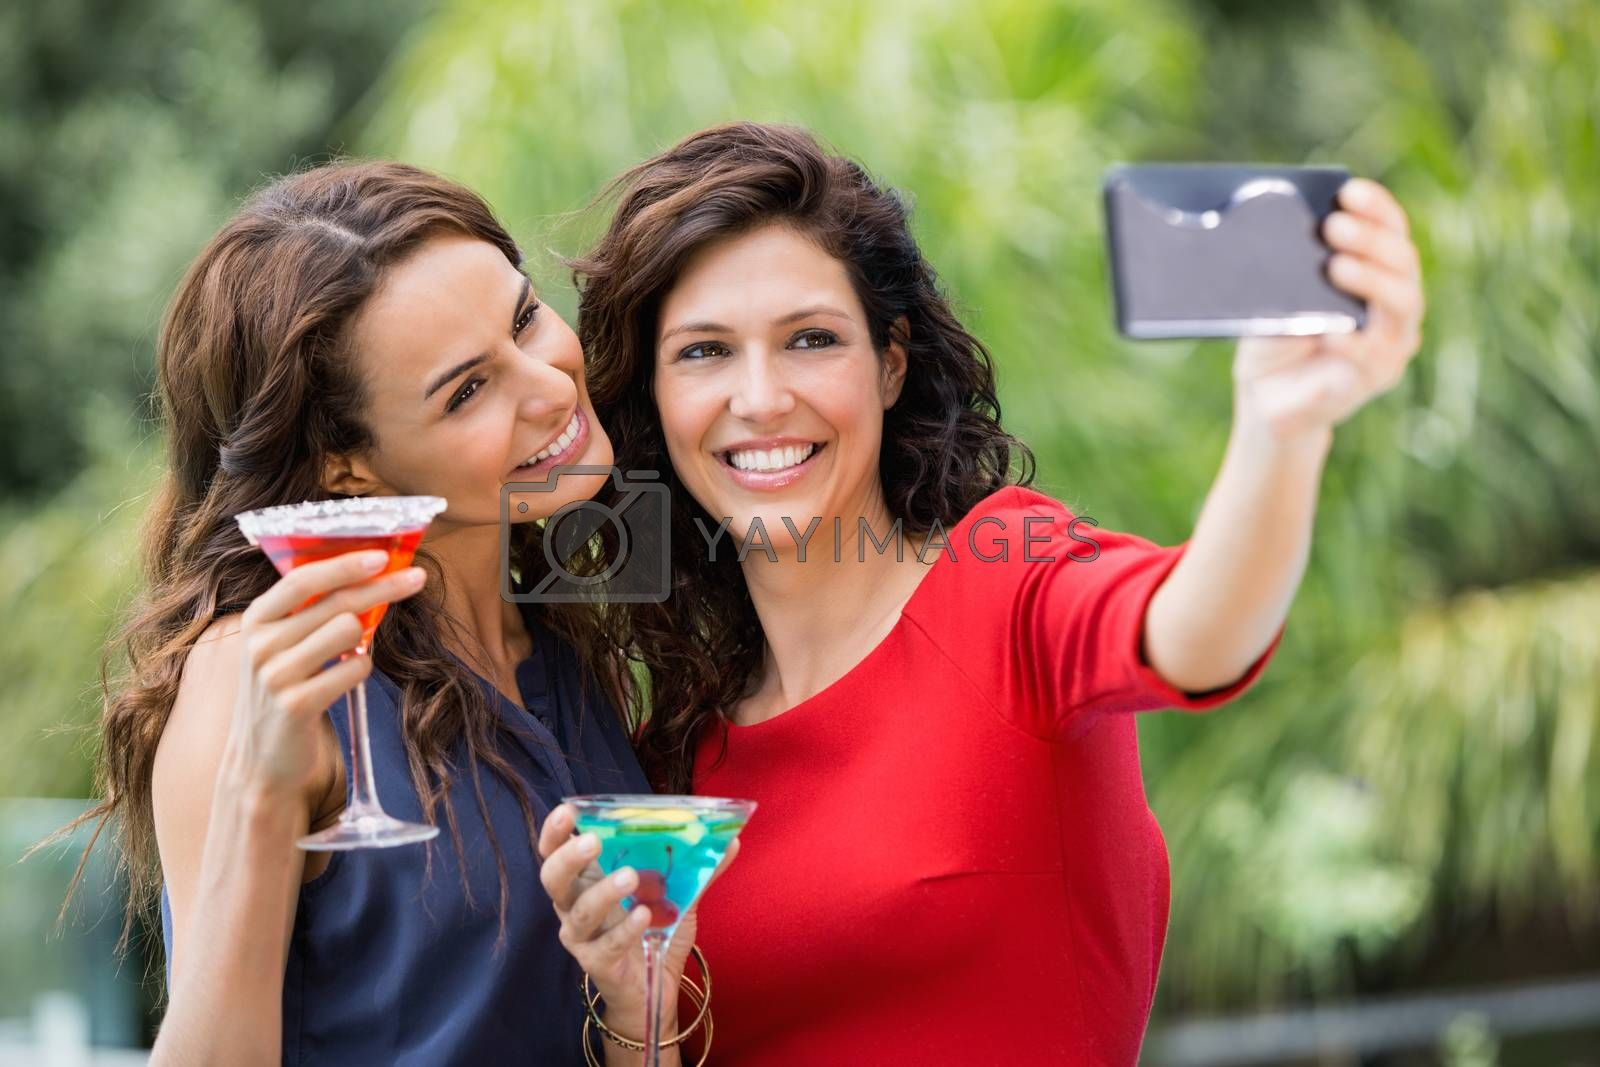 Smiling friends taking self portrait while holding drinks at resort